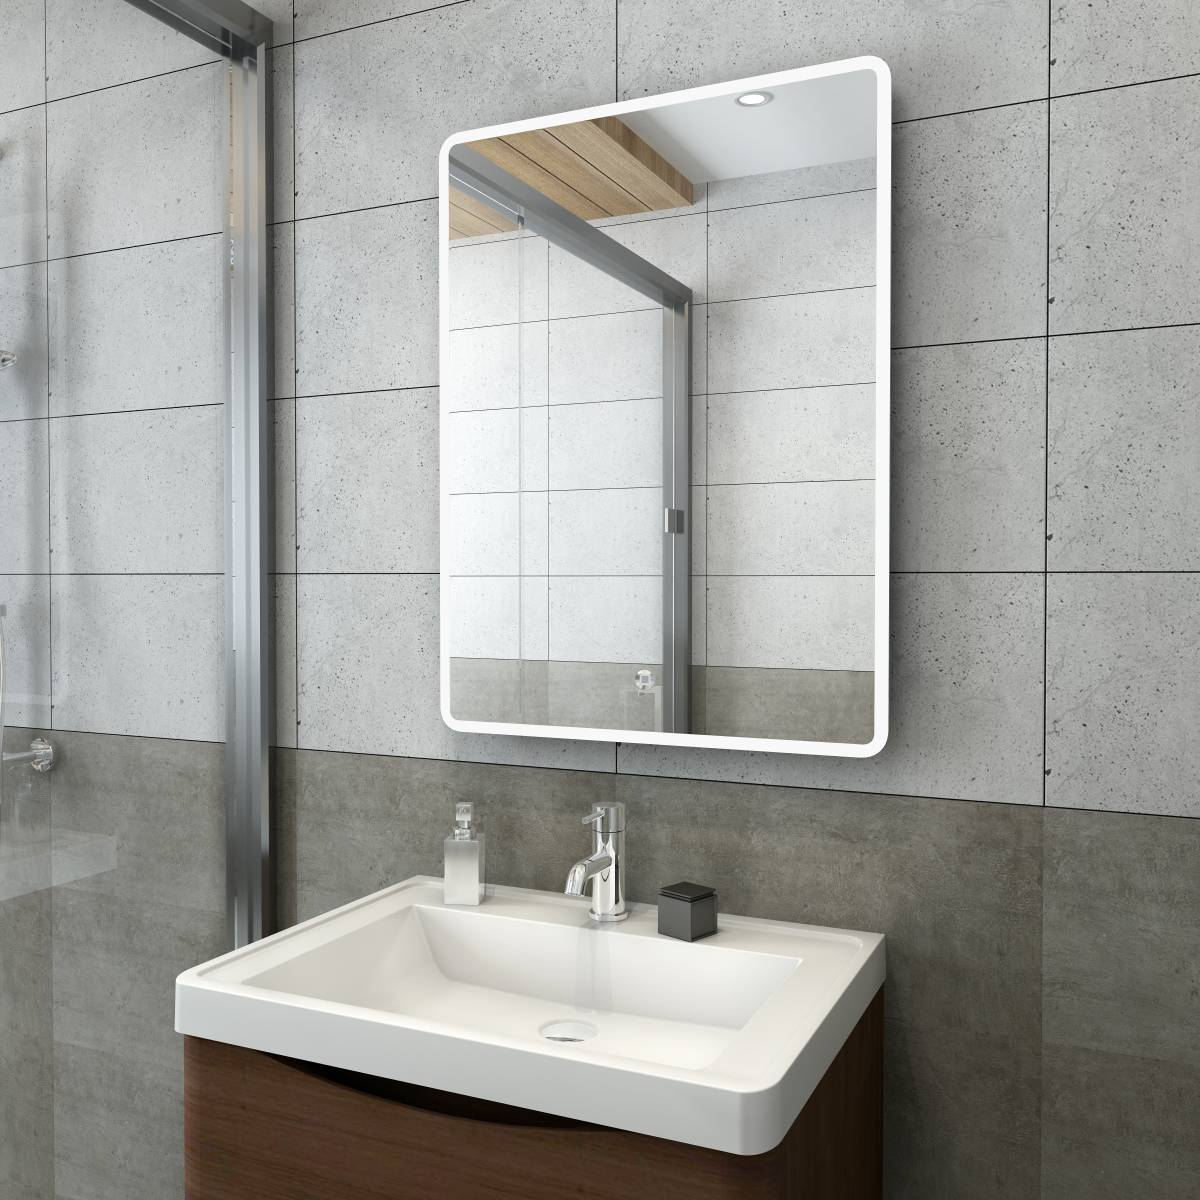 Popular Illuminated Wall Mirrors For Bathroom Intended For Details About 800 X 600 Illuminated Wall Hung Led Bathroom Mirror With  Steam Free Demister Pad (View 17 of 20)